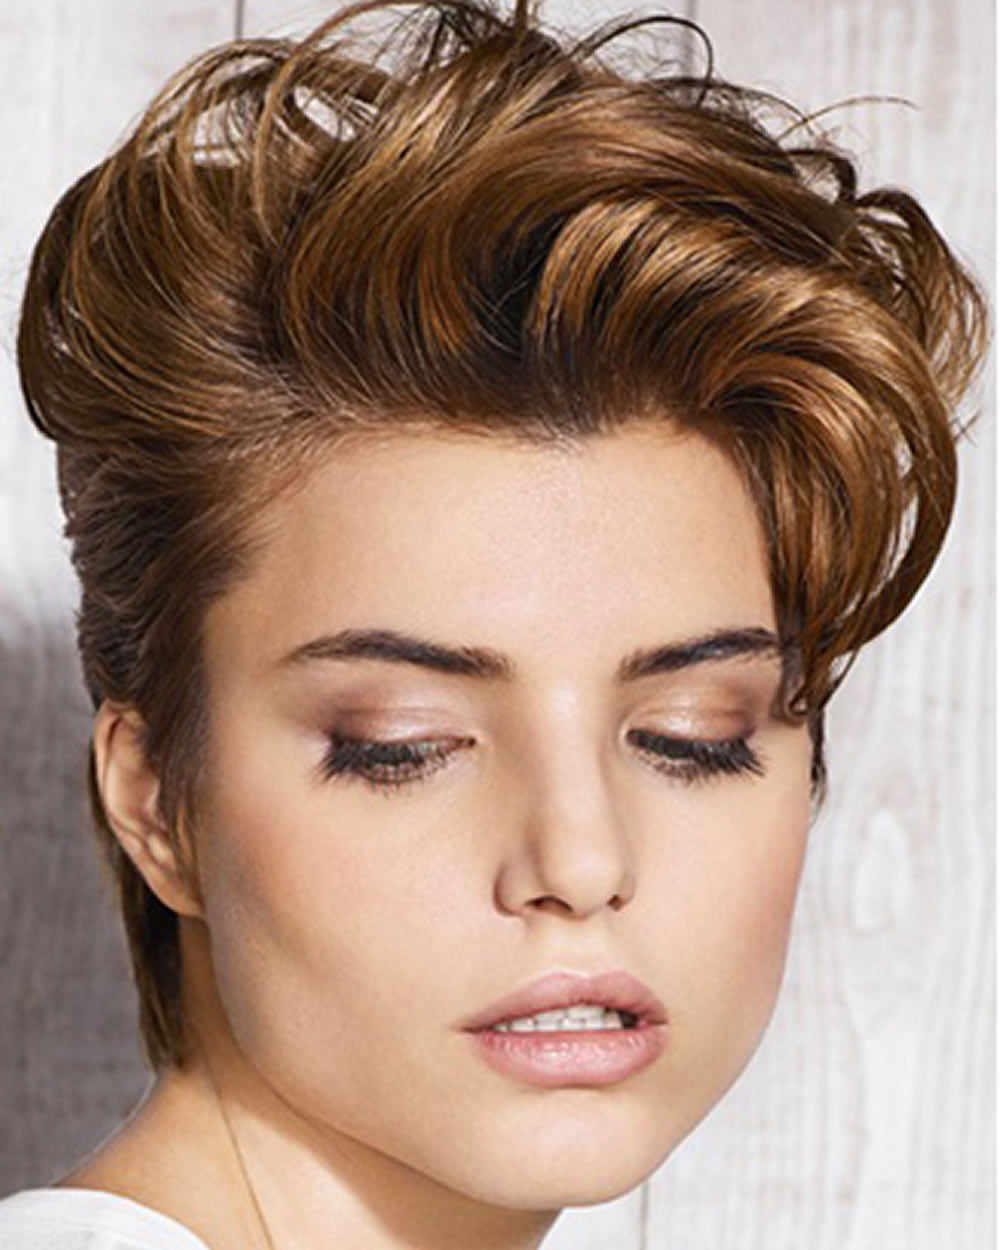 Current Hairstyles 2019: The Latest 25 Ravishing Short Hairstyles And Colors You